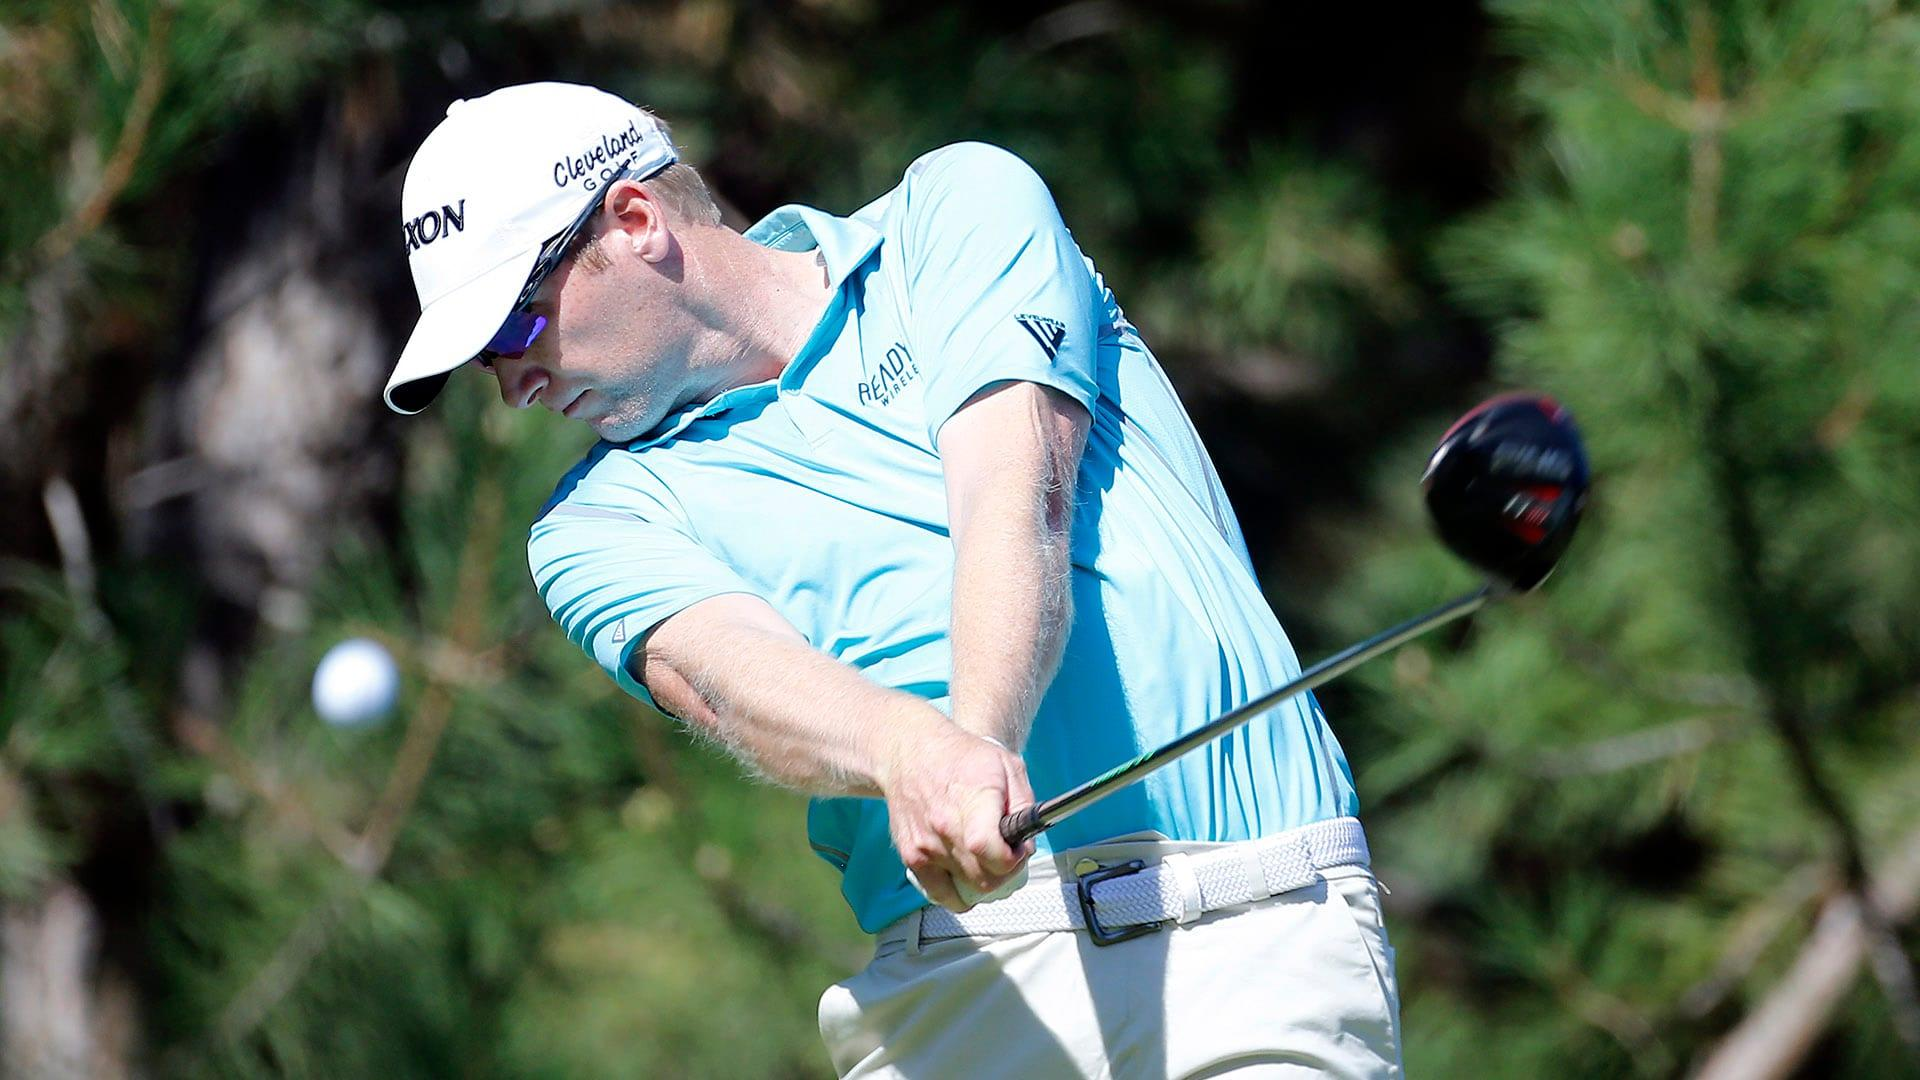 Brehm (63) grabs lead at midway point of Korn Ferry Tour's Boise Open